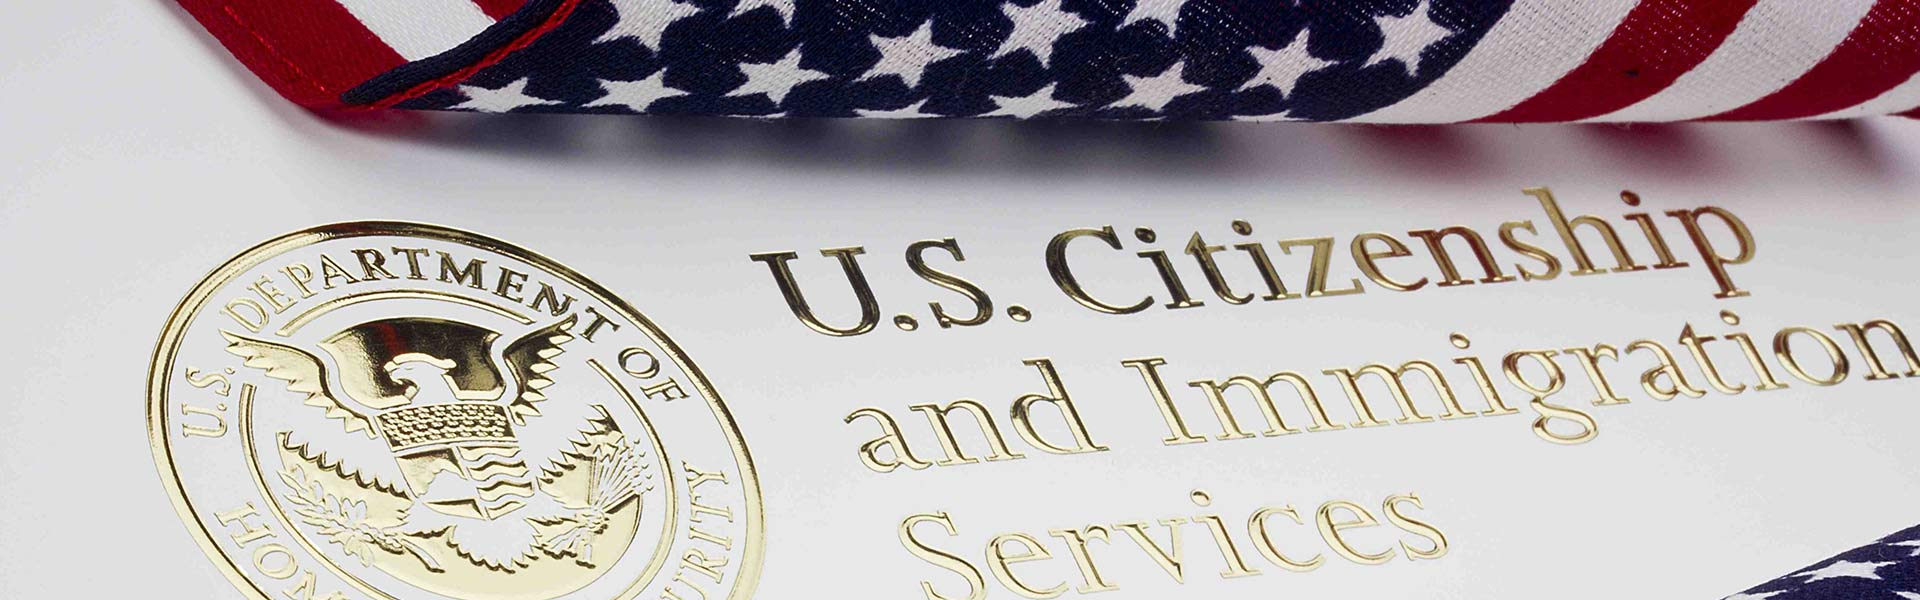 USCIS certified translation services, fast and affordable